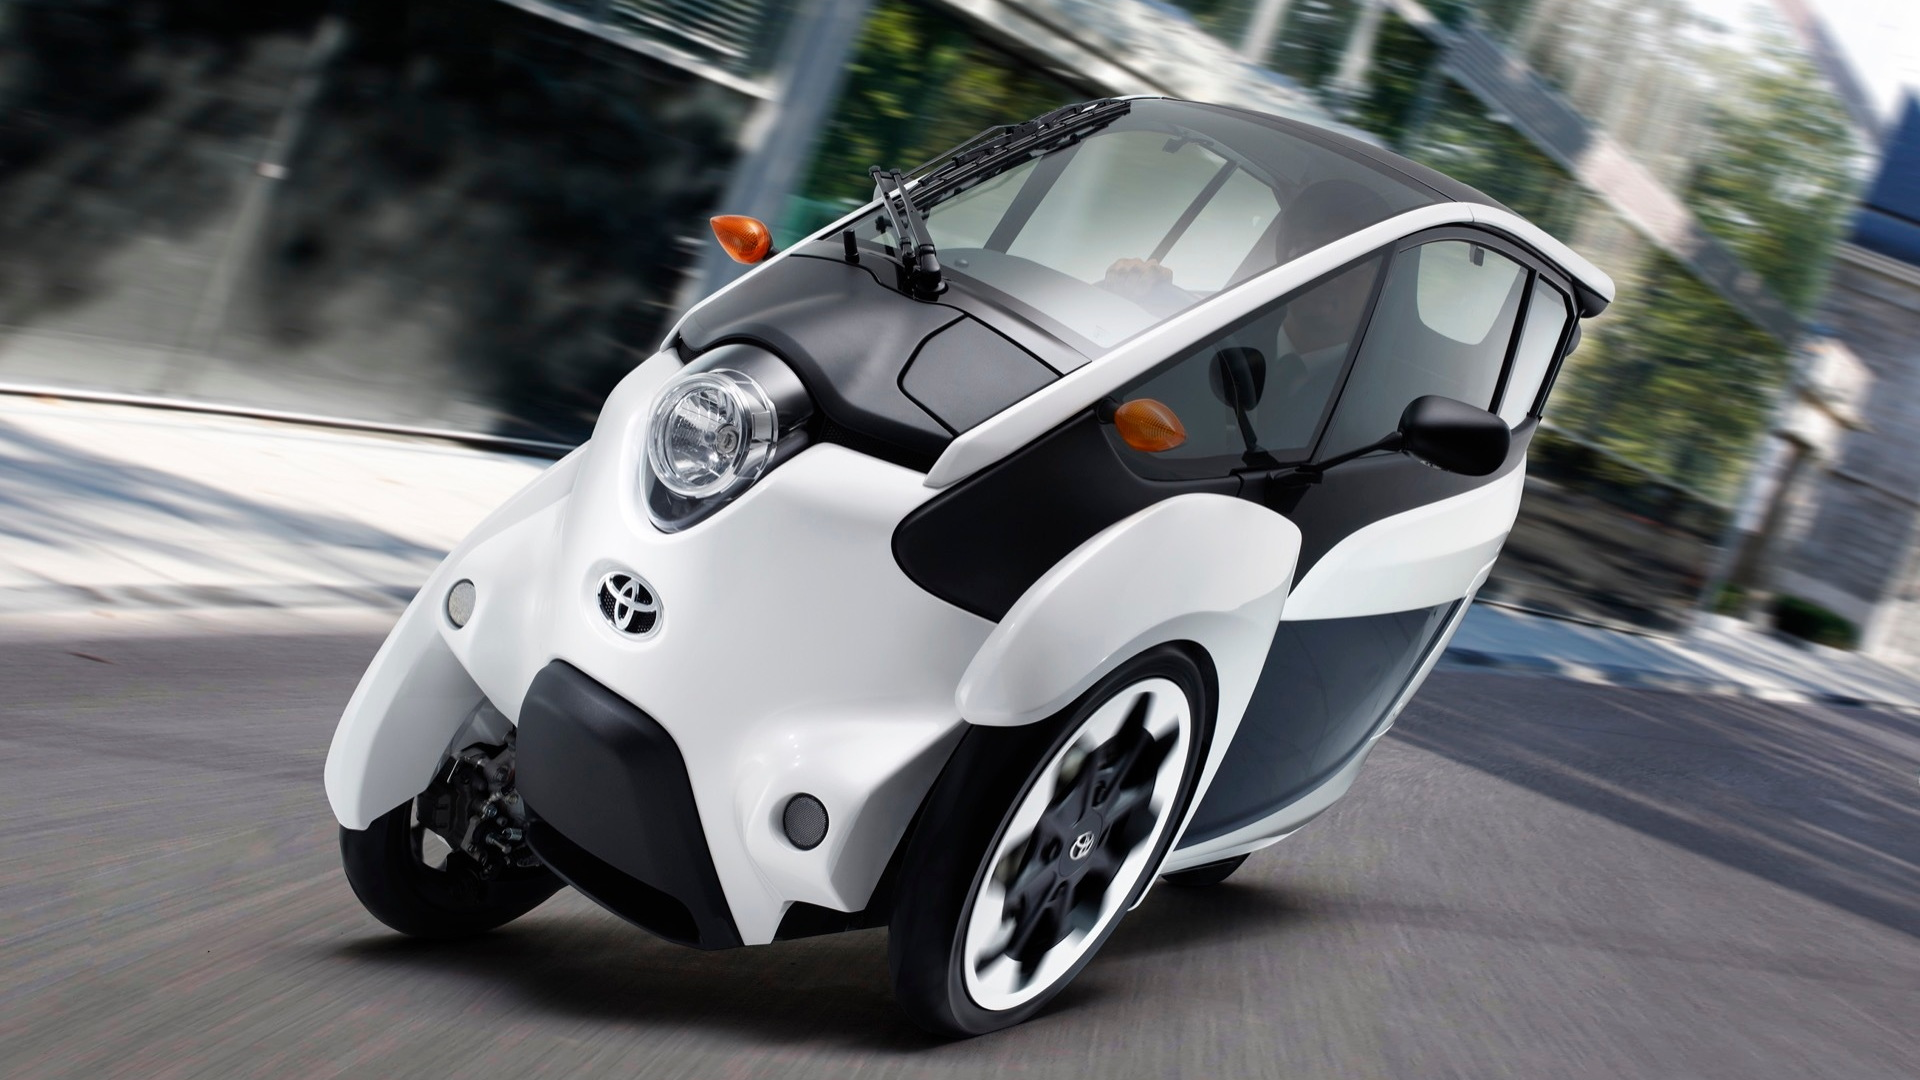 Toyota i-Road electric urban mobility vehicle